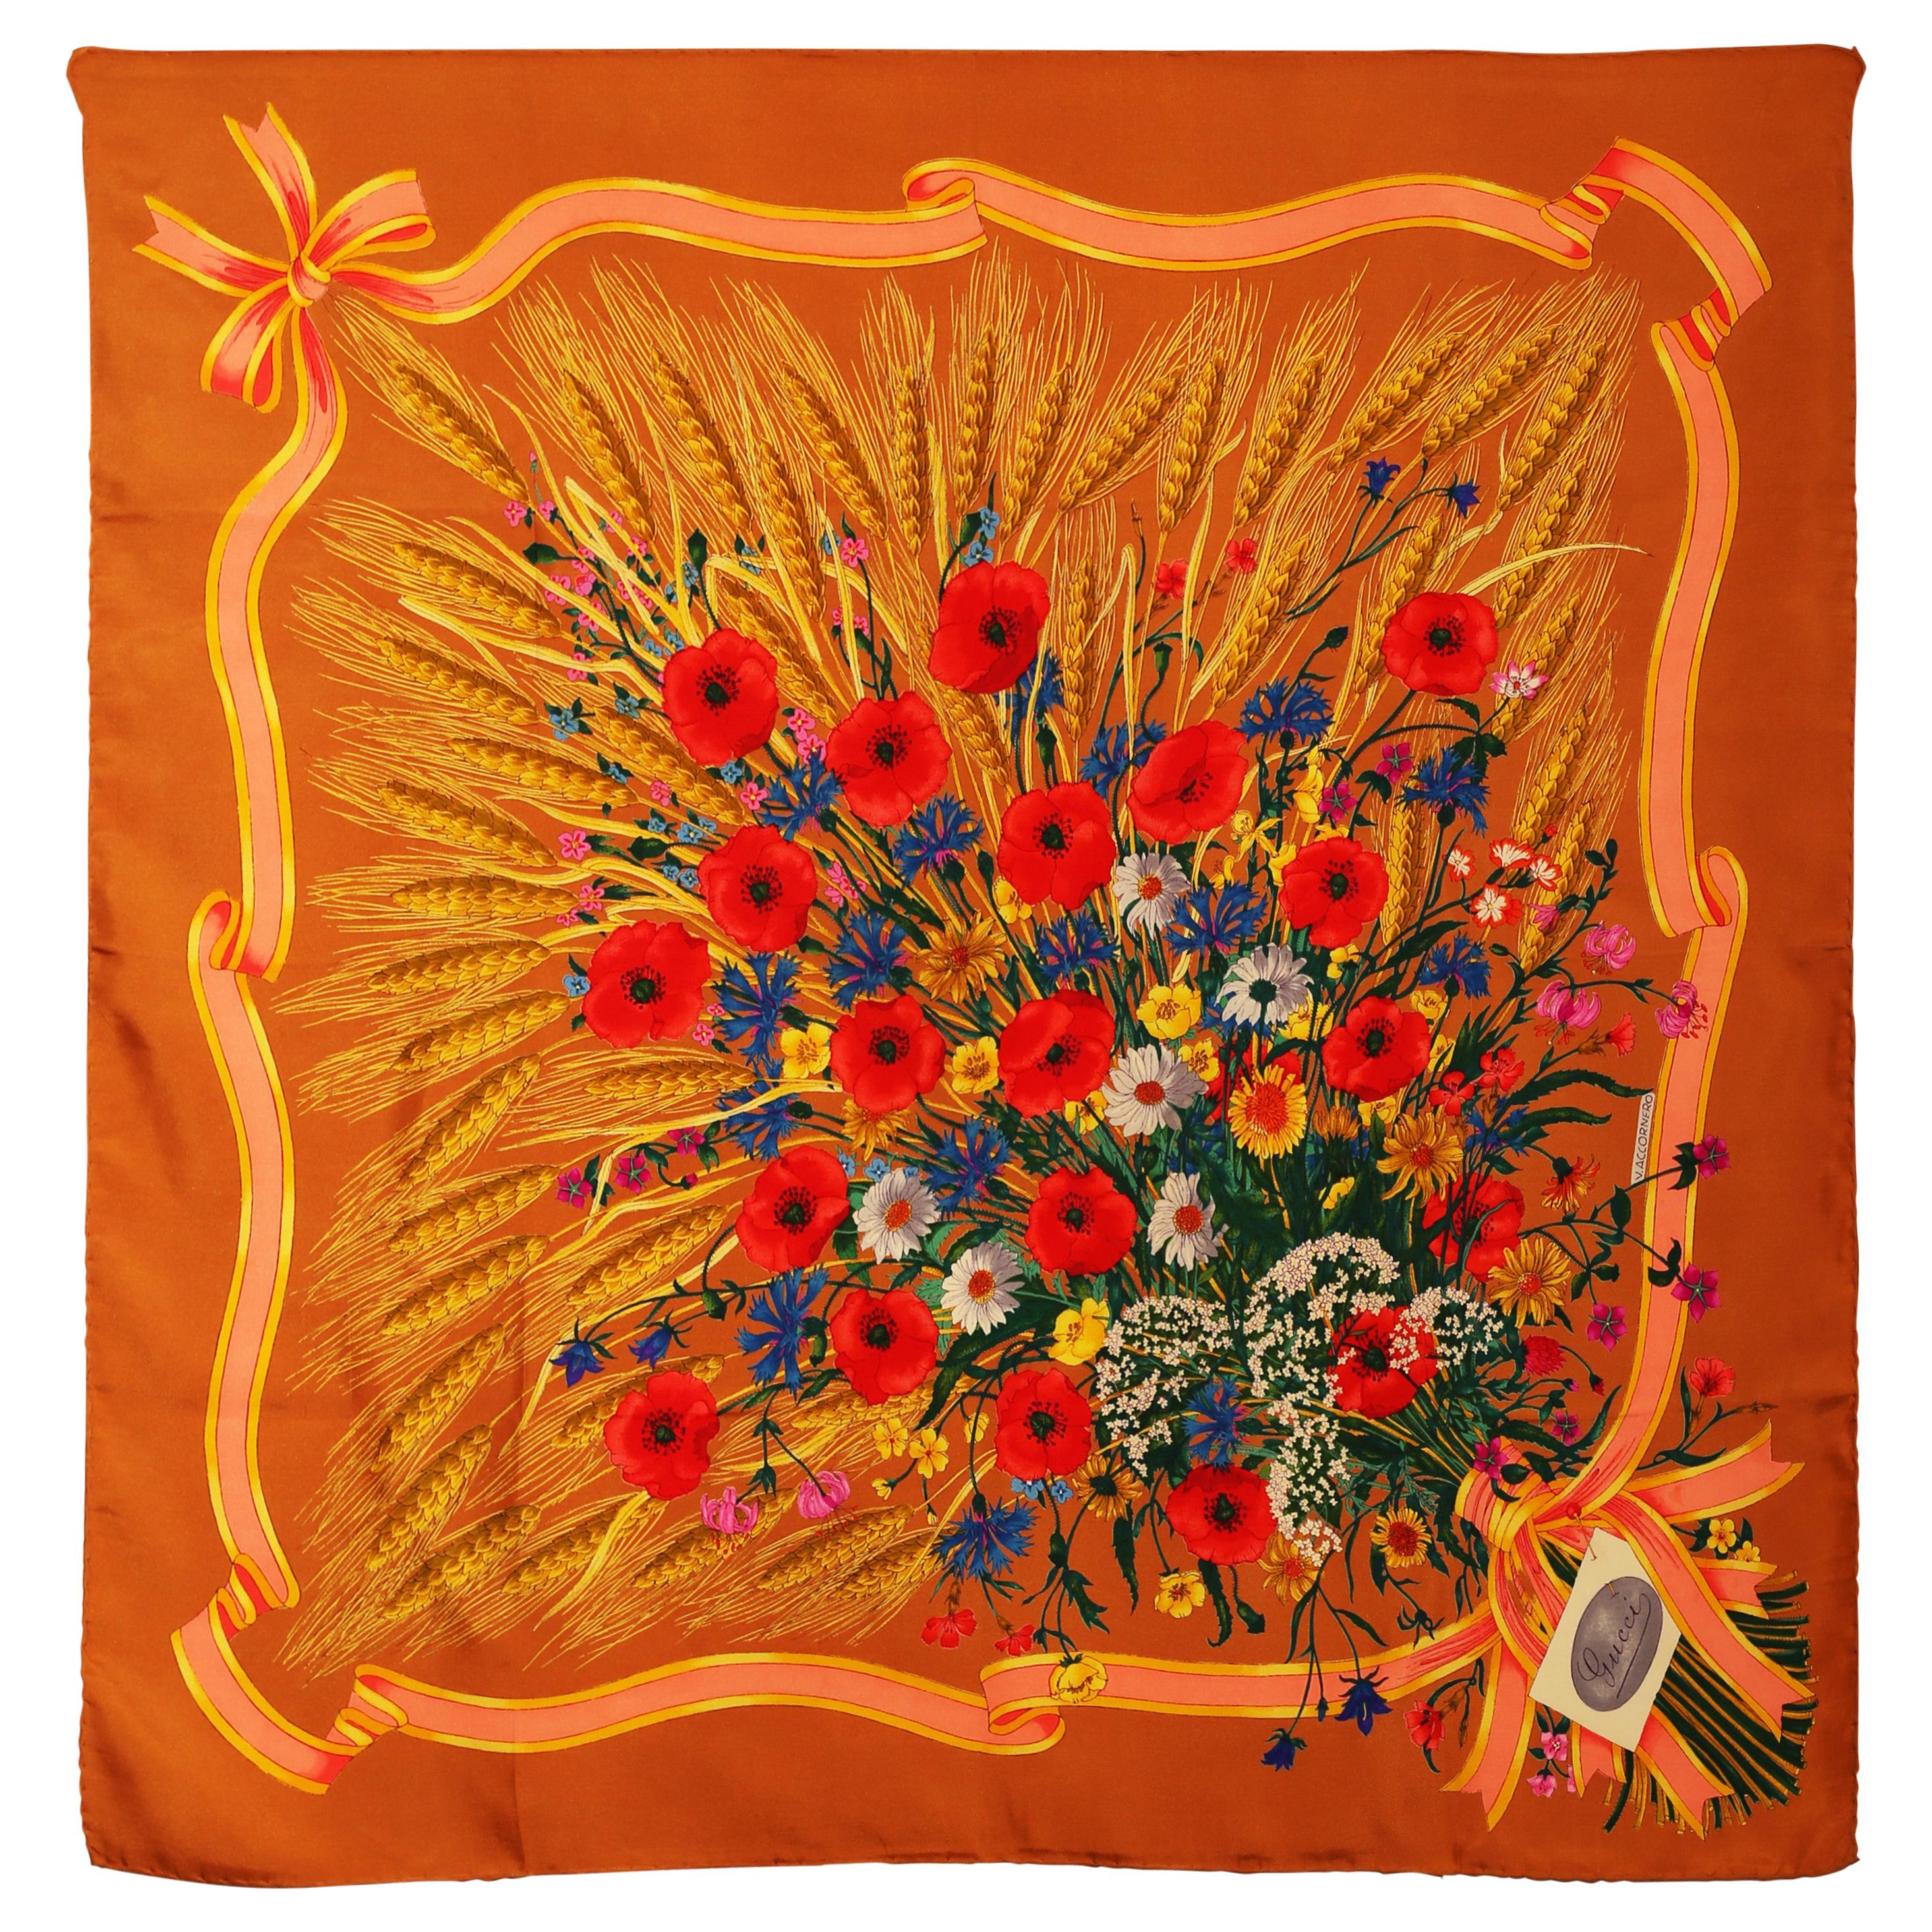 Gucci Spighe Wheat and  Poppy Flowers signed by Vittorio Acornero 1960´s-1970´s